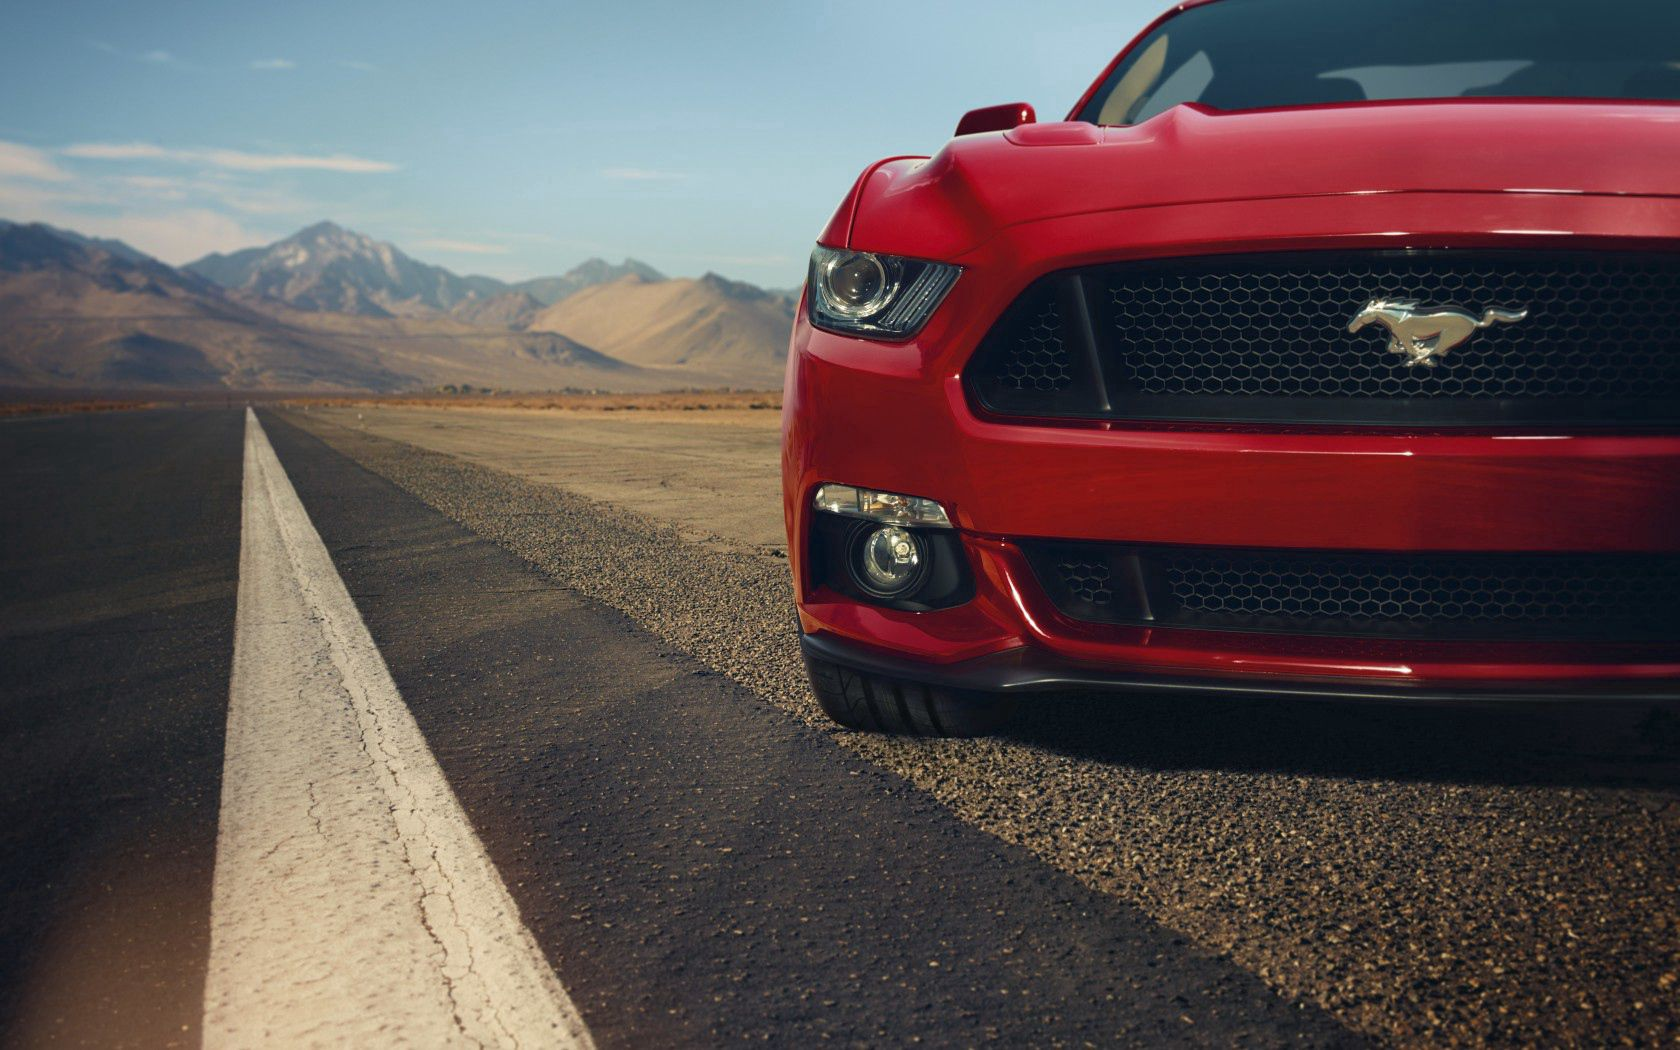 109194 download wallpaper Cars, Ford, Mustang, Gt, Muscle Car, Front, Before screensavers and pictures for free